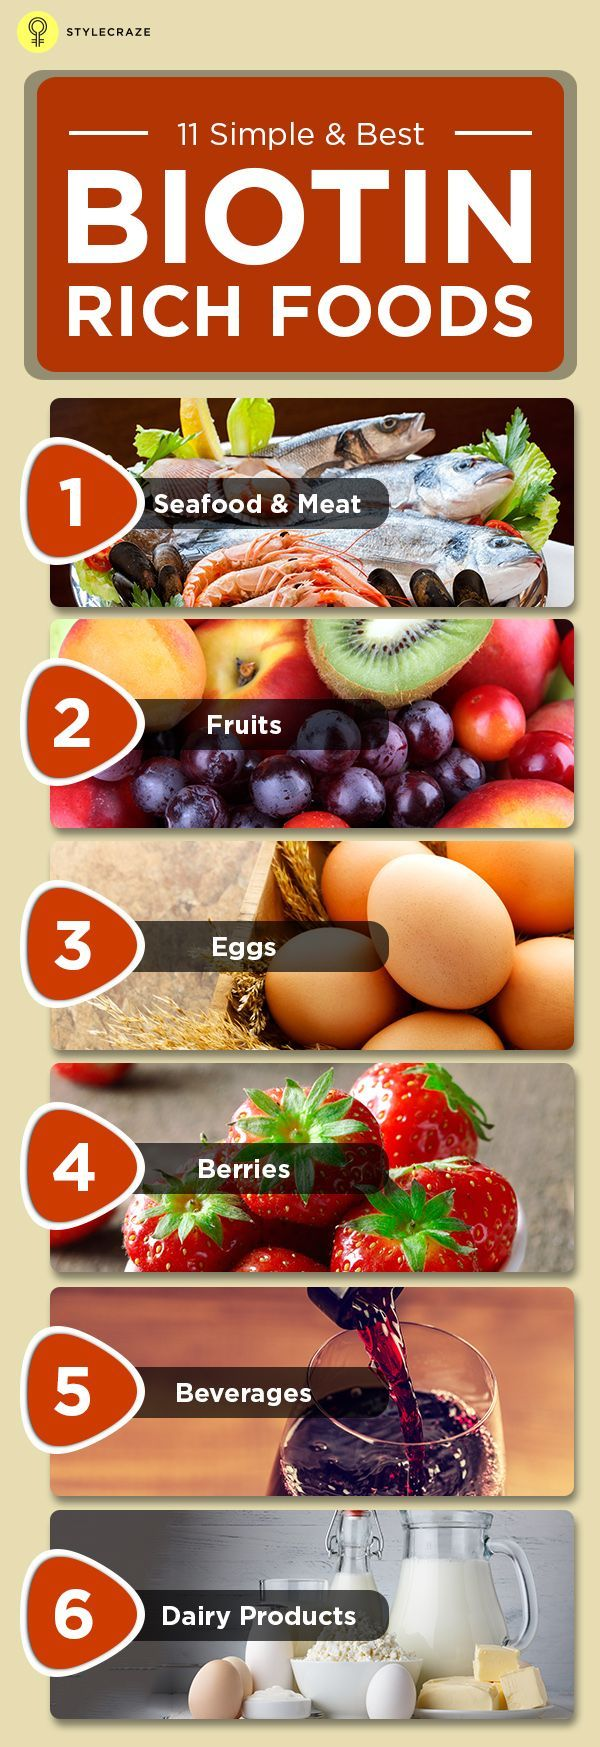 16 BiotinRich Foods For A Healthy You Biotin rich foods